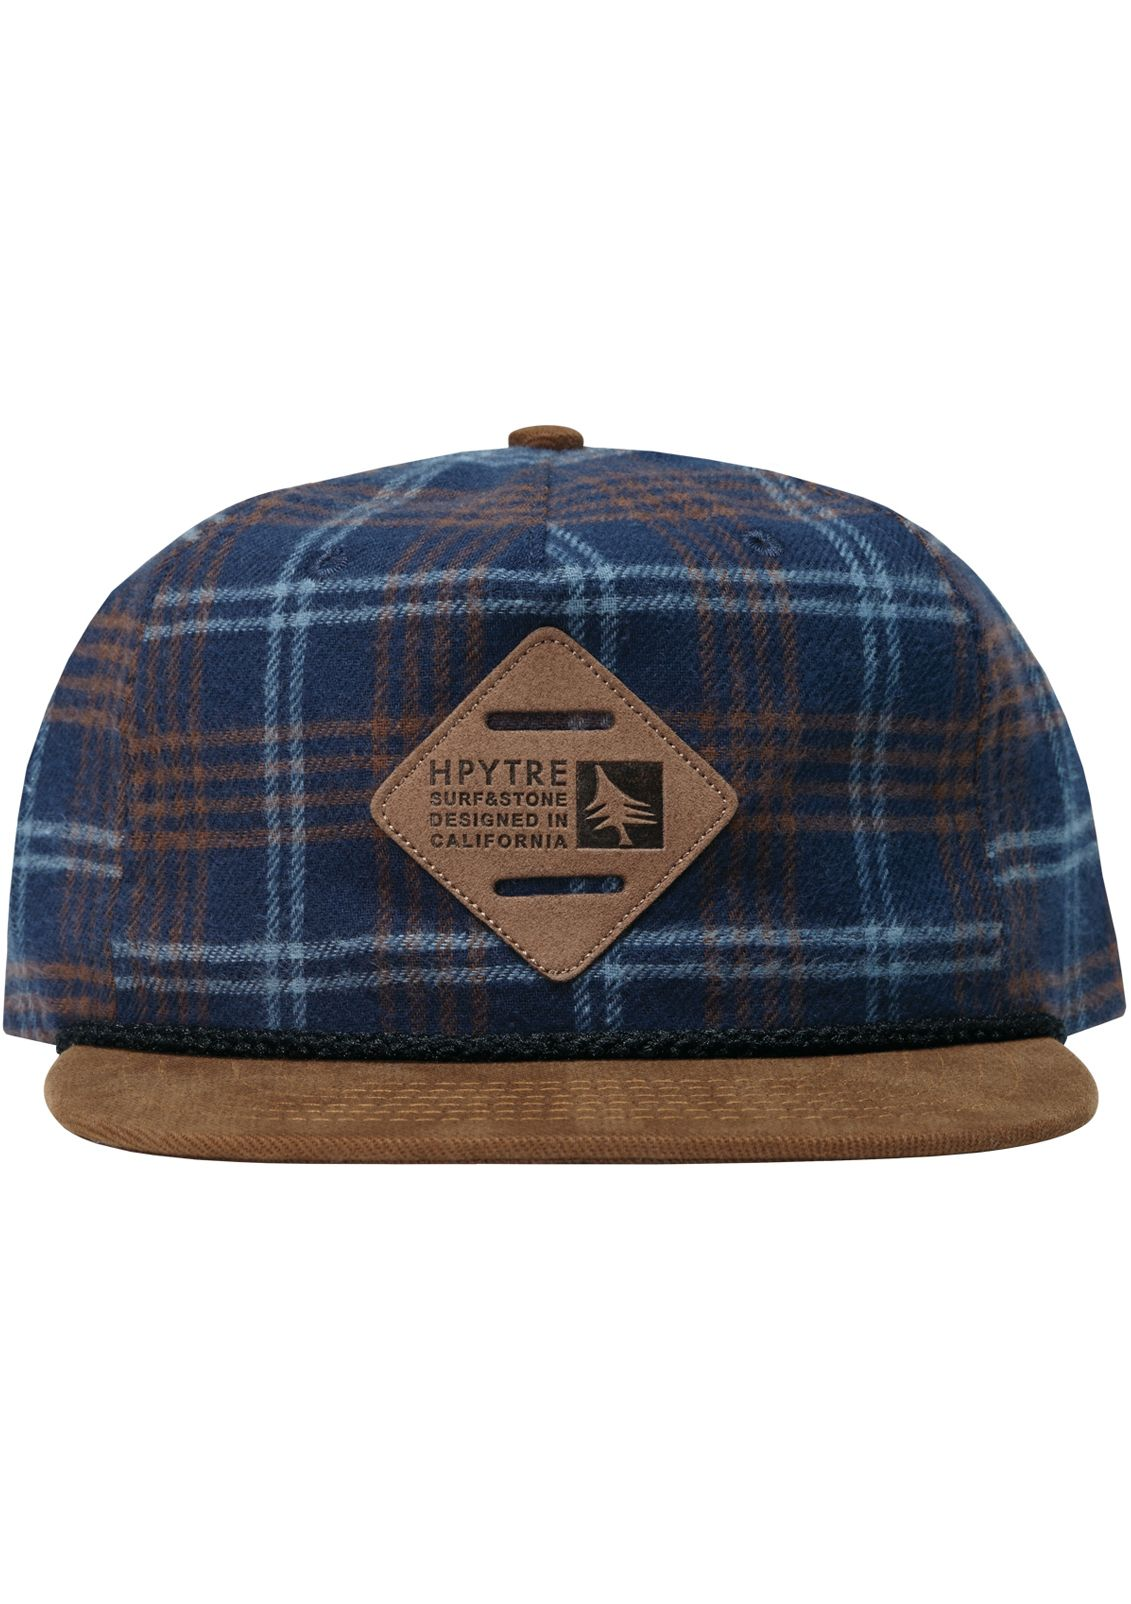 Hippy Tree Chico Hat Men S Accessories Hats Beanies 01 Jpg 1131 1604 Hats For Men Hats Leather Patches